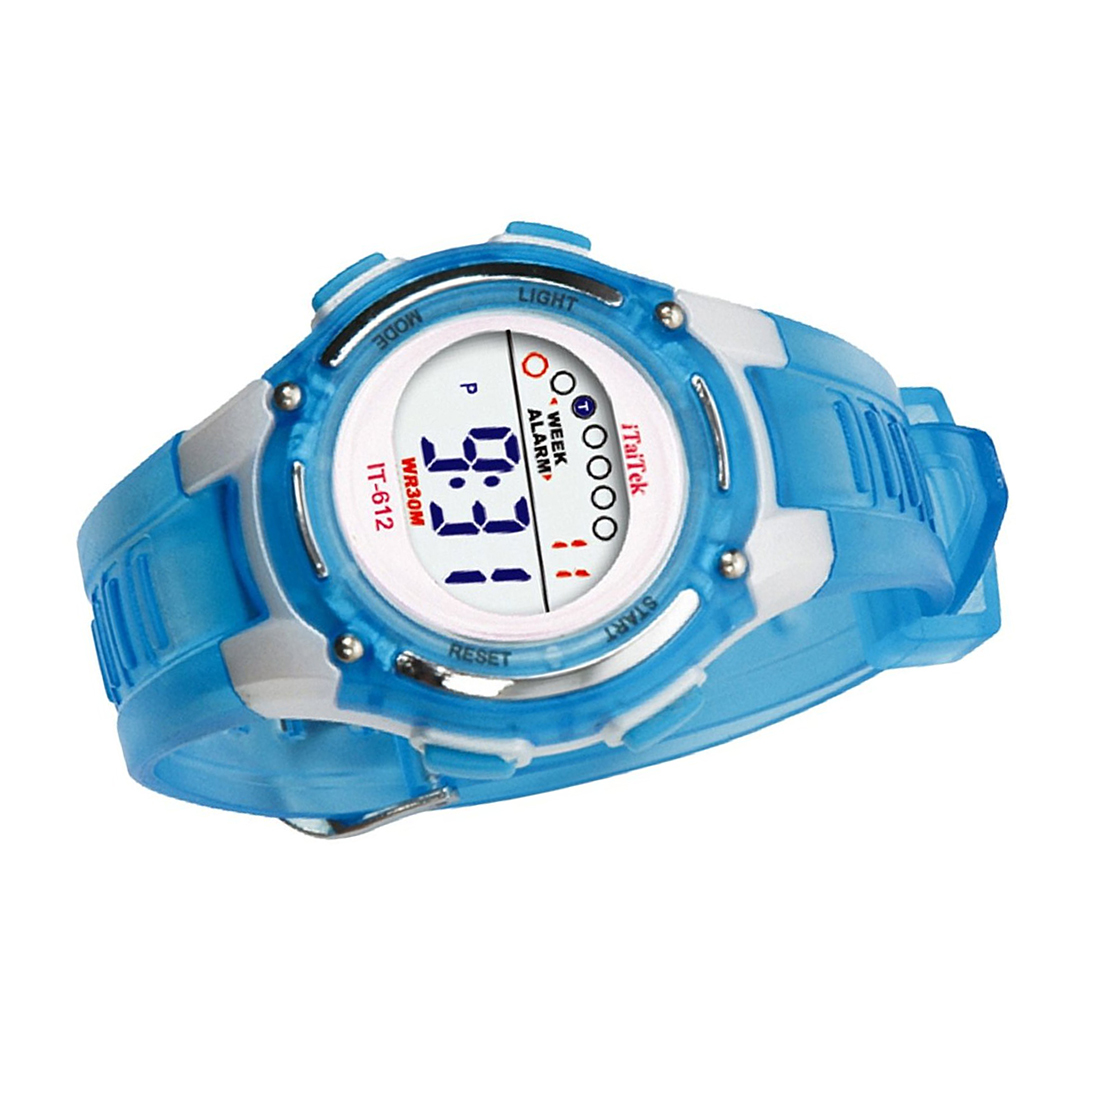 Kids Swimming Digital Sports Waterproof Wrist Watch (Green)